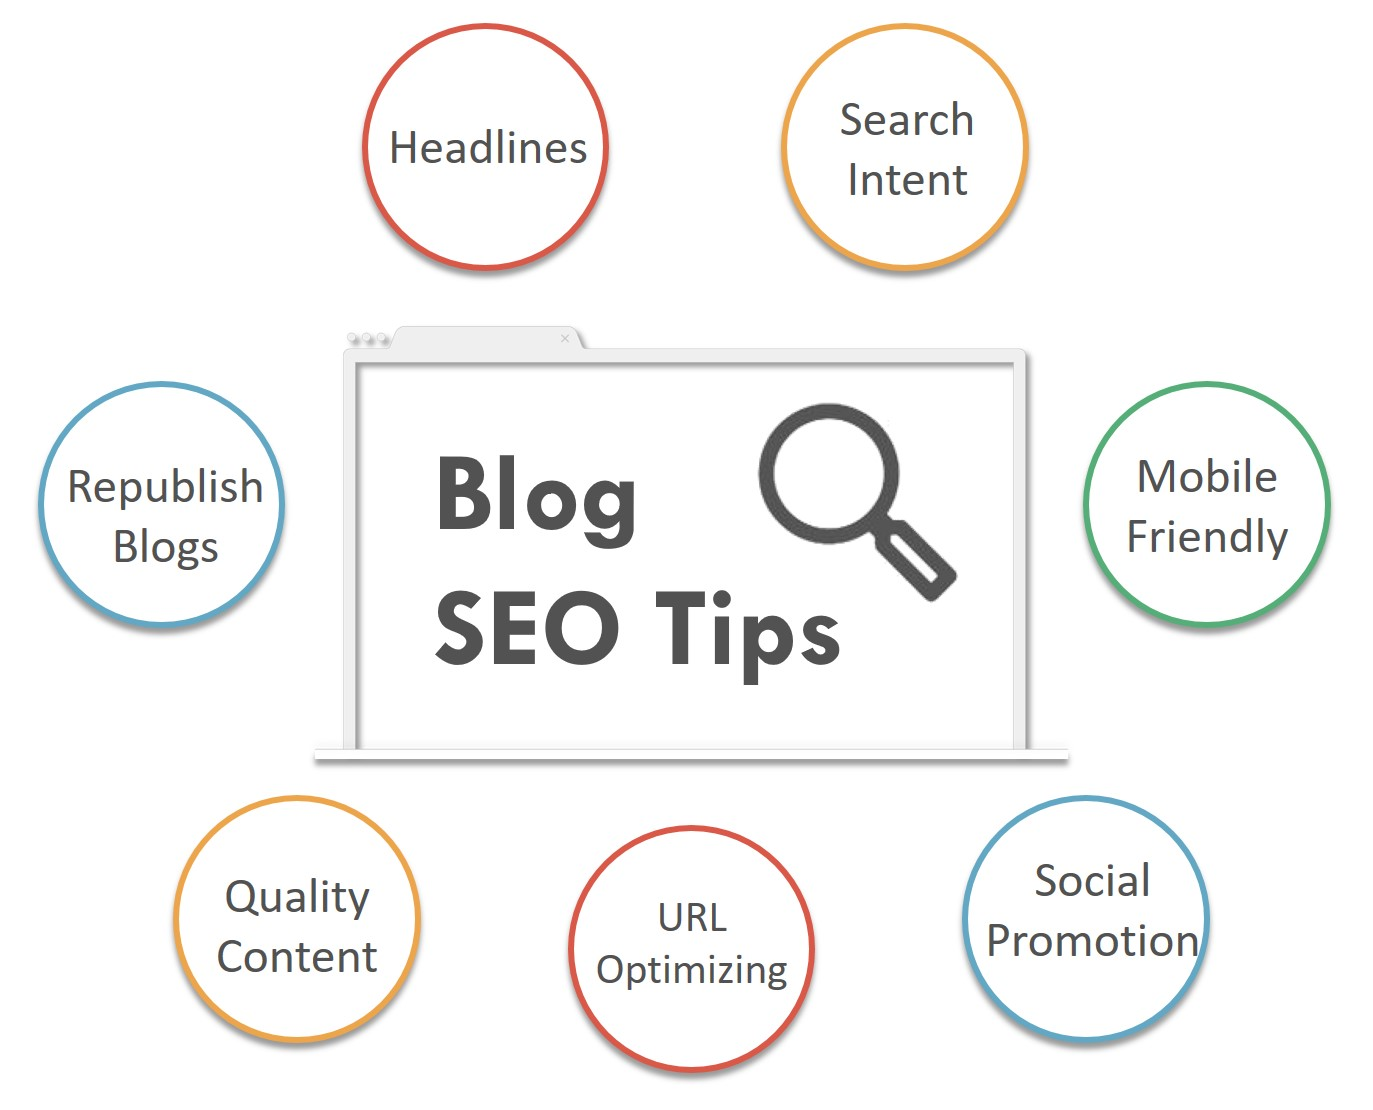 Blog SEO Tips Pagezii Digital Marketing Blog